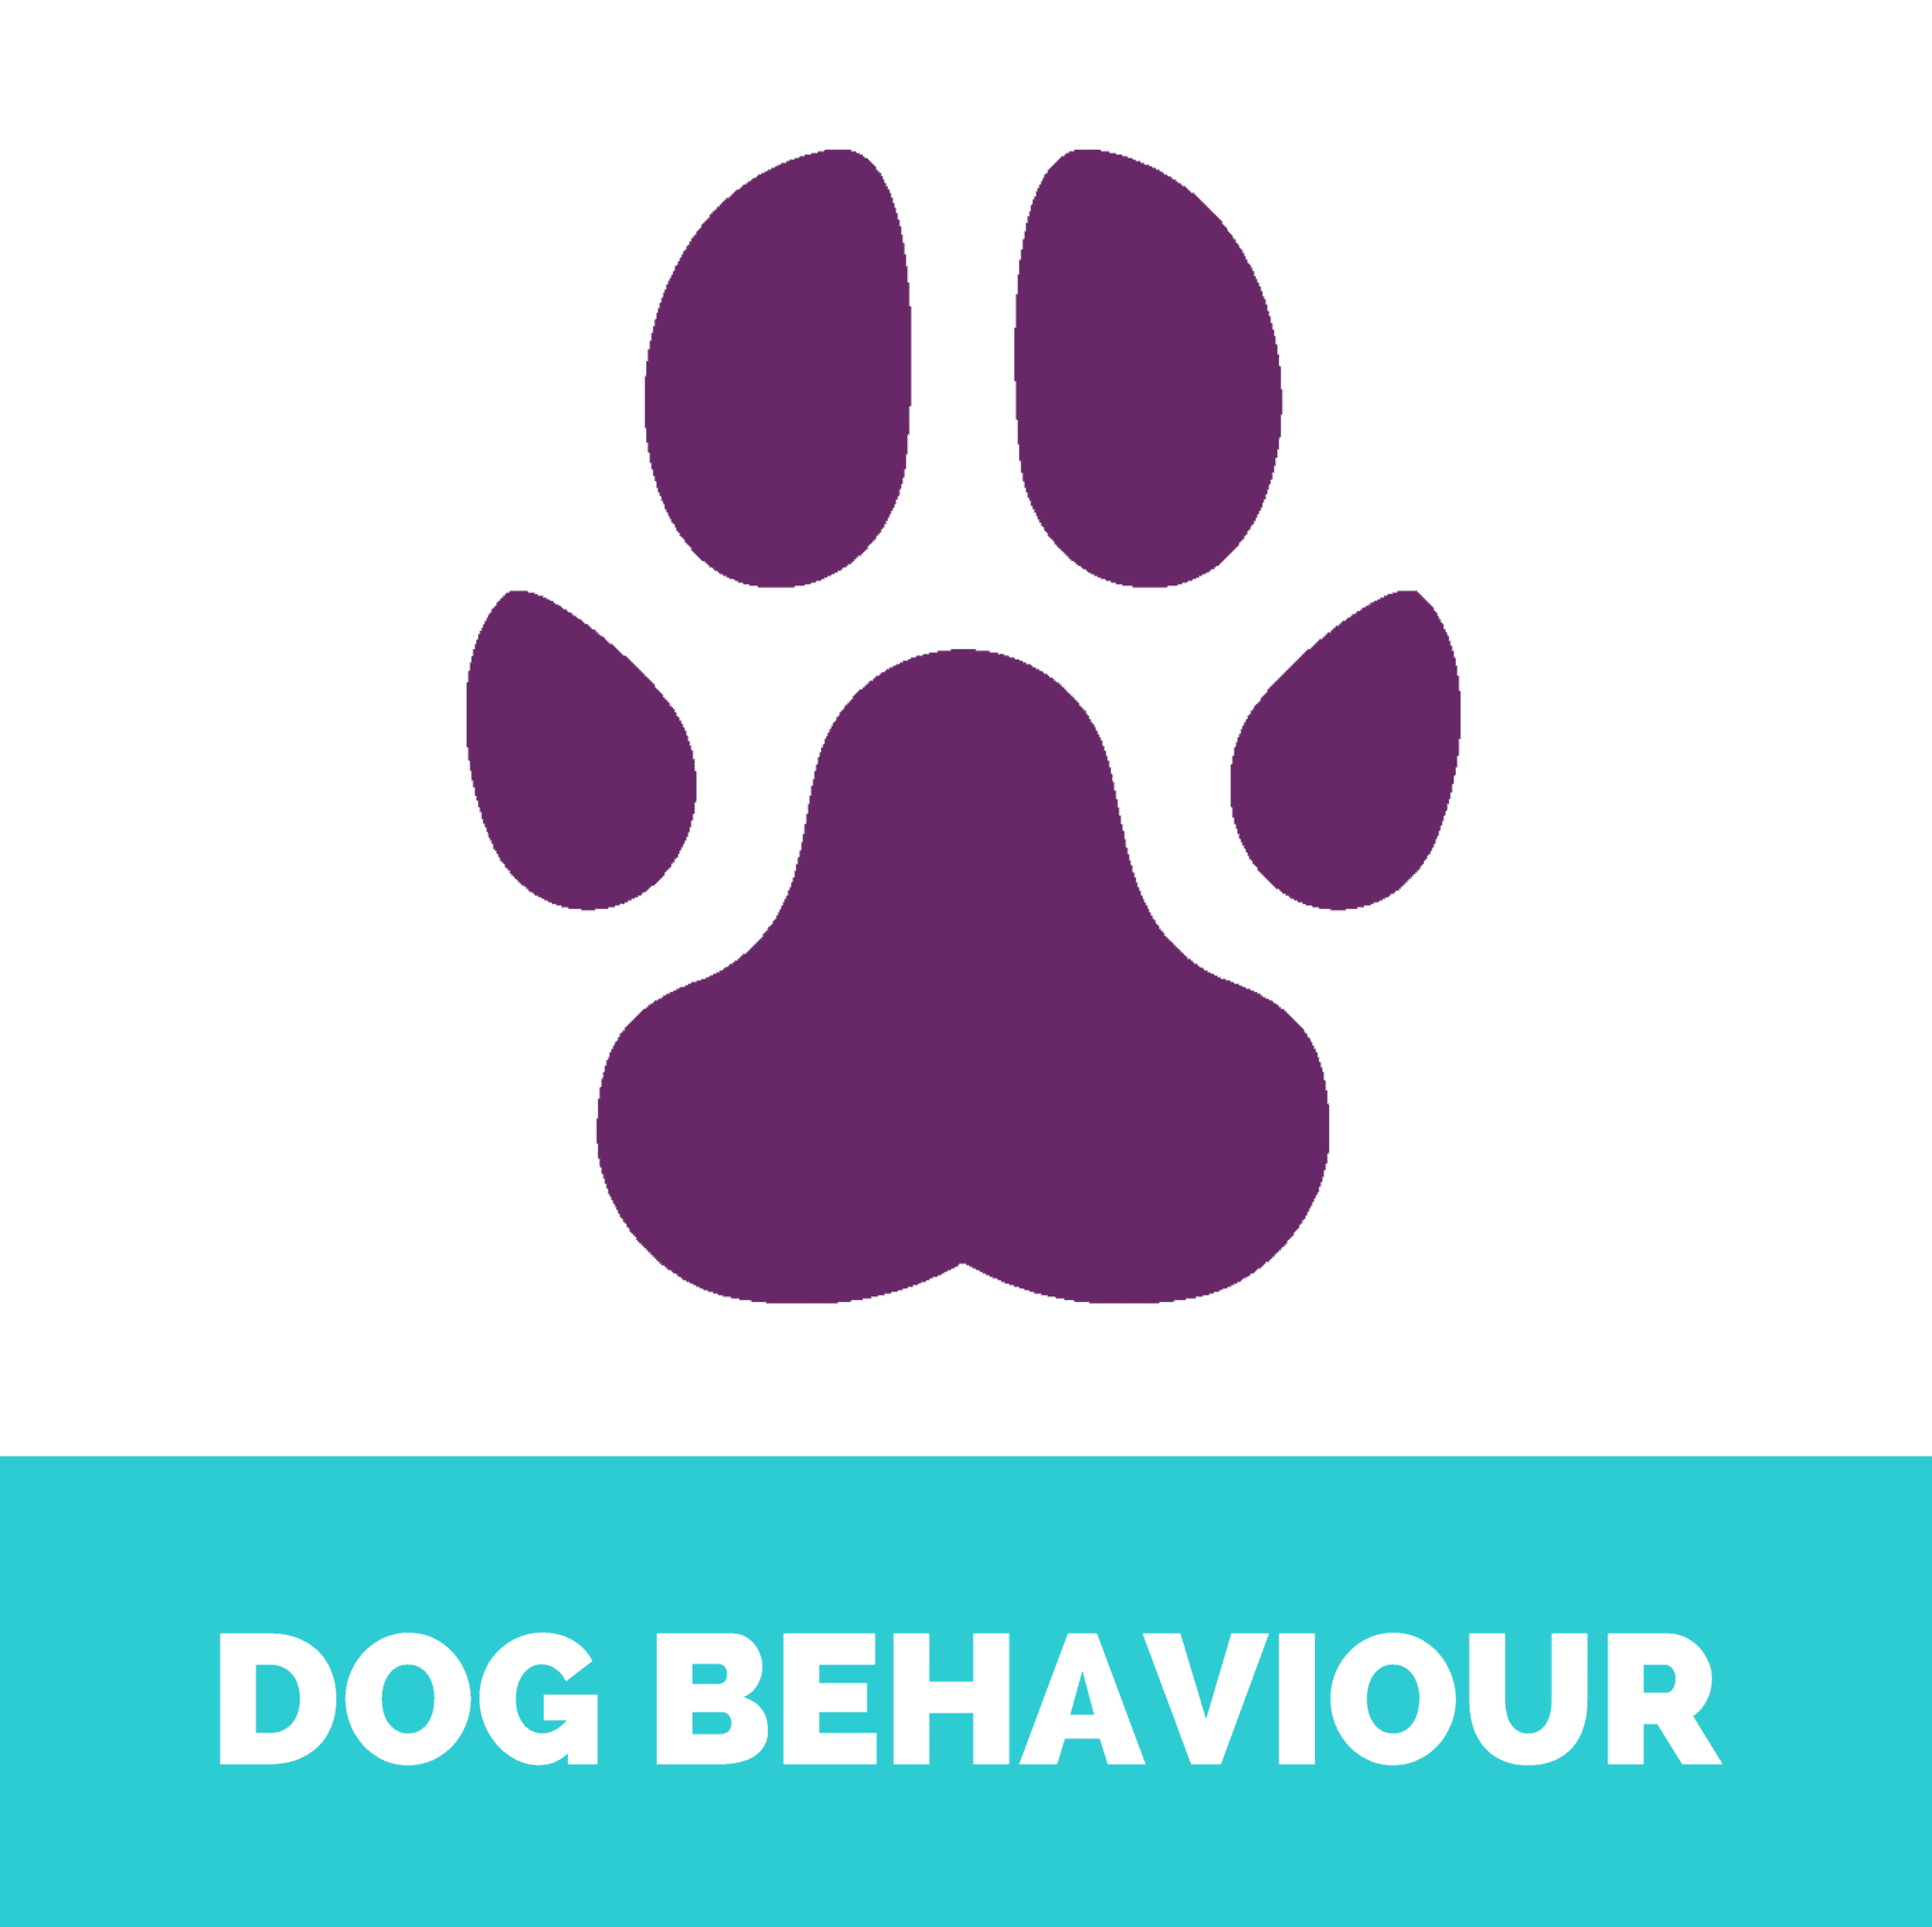 Dog behaviour